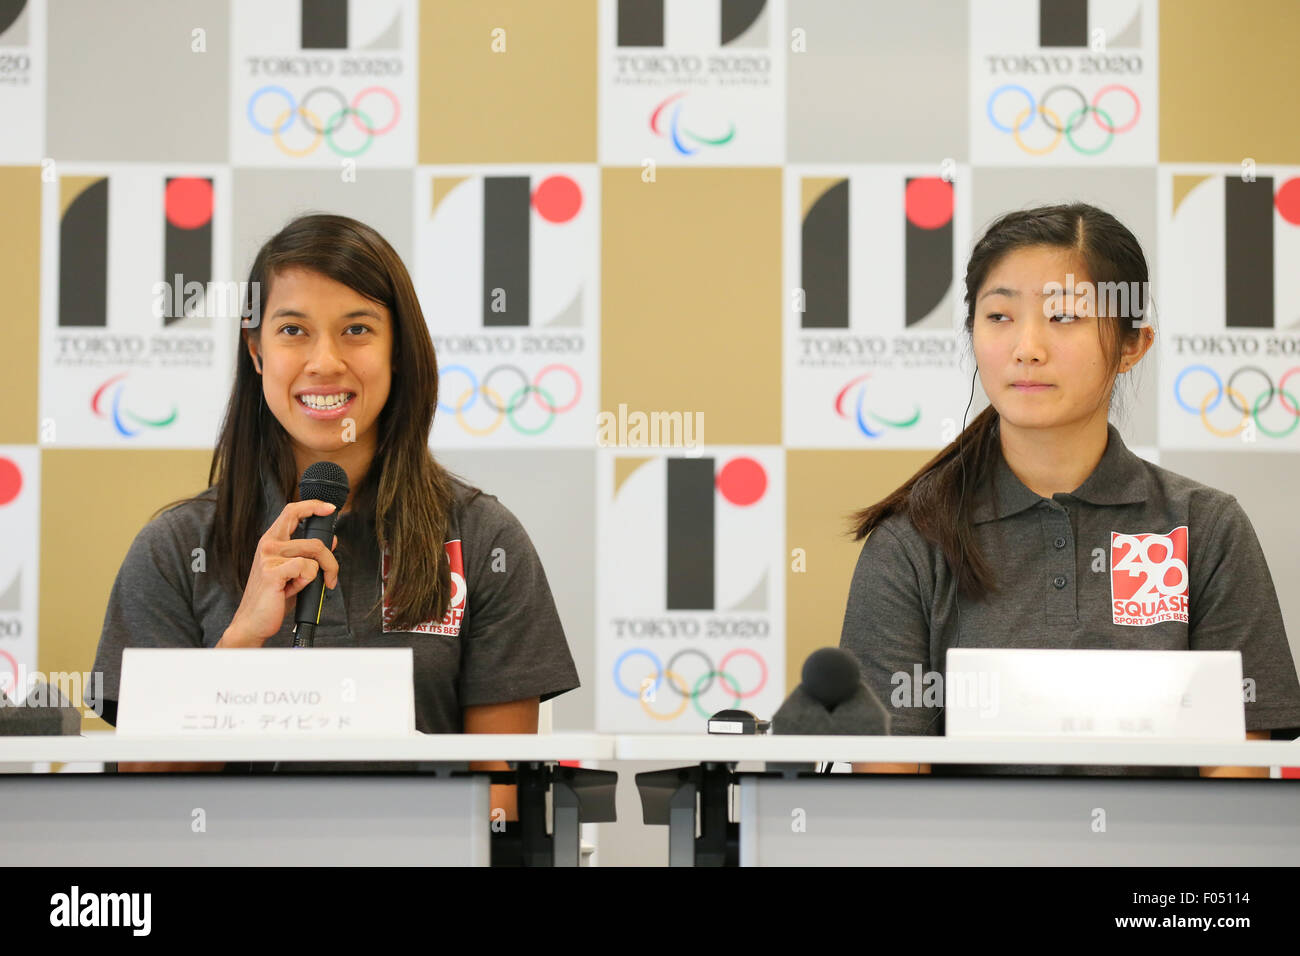 (L to R) Nicol David, Satomi Watanabe, AUGUST 7, 2015 : World Squash Federation (WSF) holds a media conference following - Stock Image